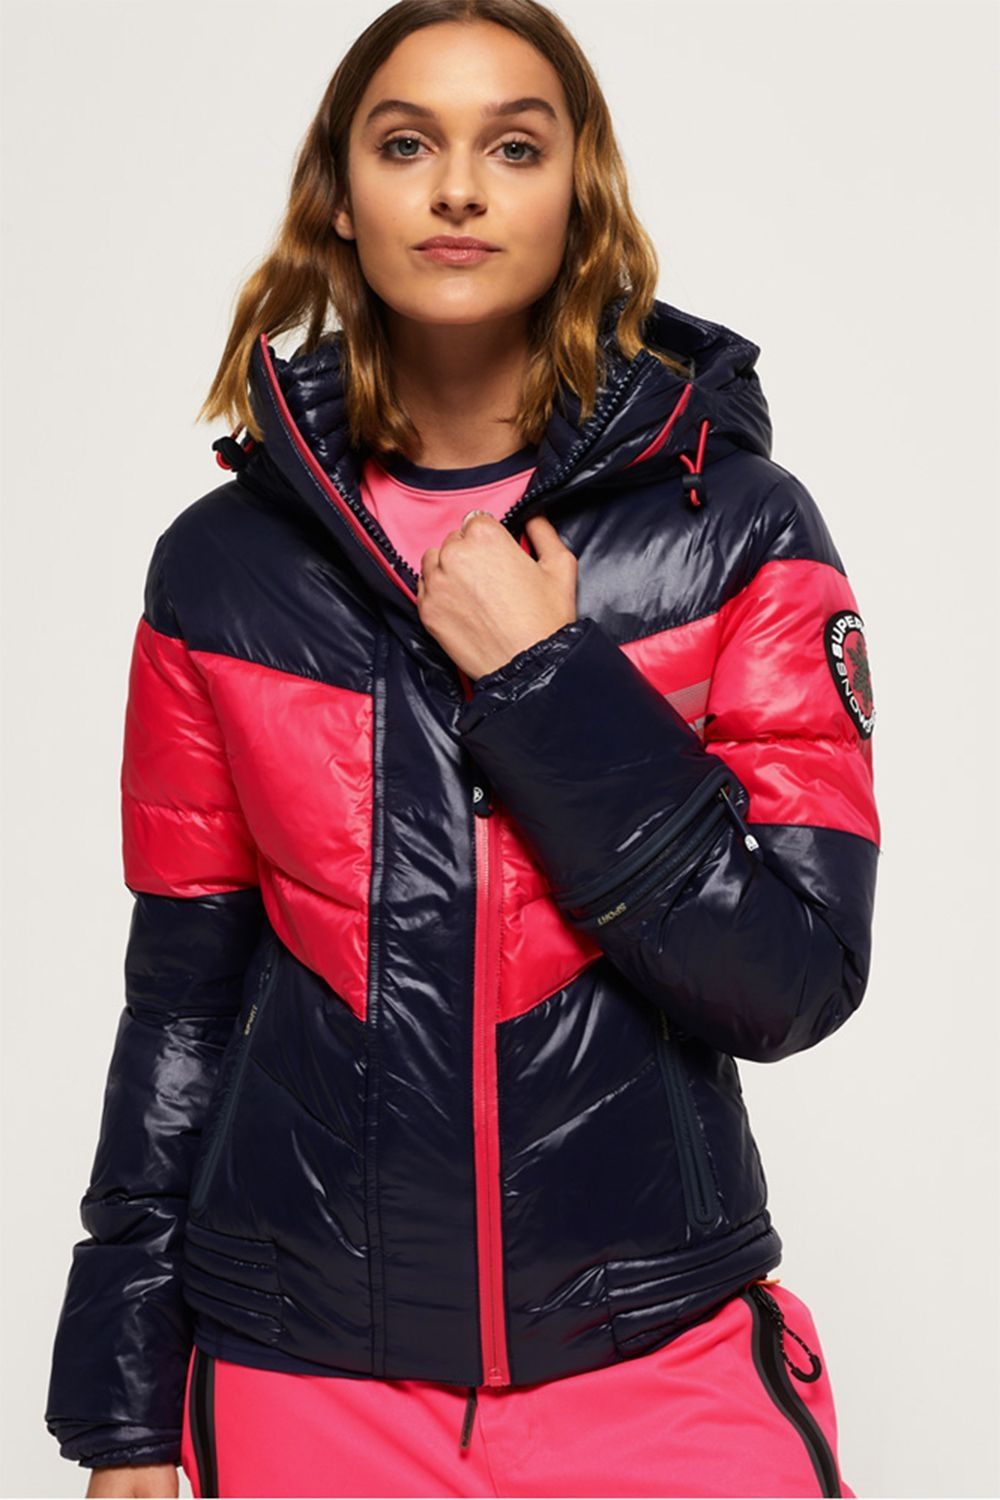 25 Excellent Picture of Fashionable Snowboard Fashion Outfits For Women .  Fashionable Snowboard Fashion Outfits For Women Womens Ski Wear The Best  And Most ... 67cb6bc73